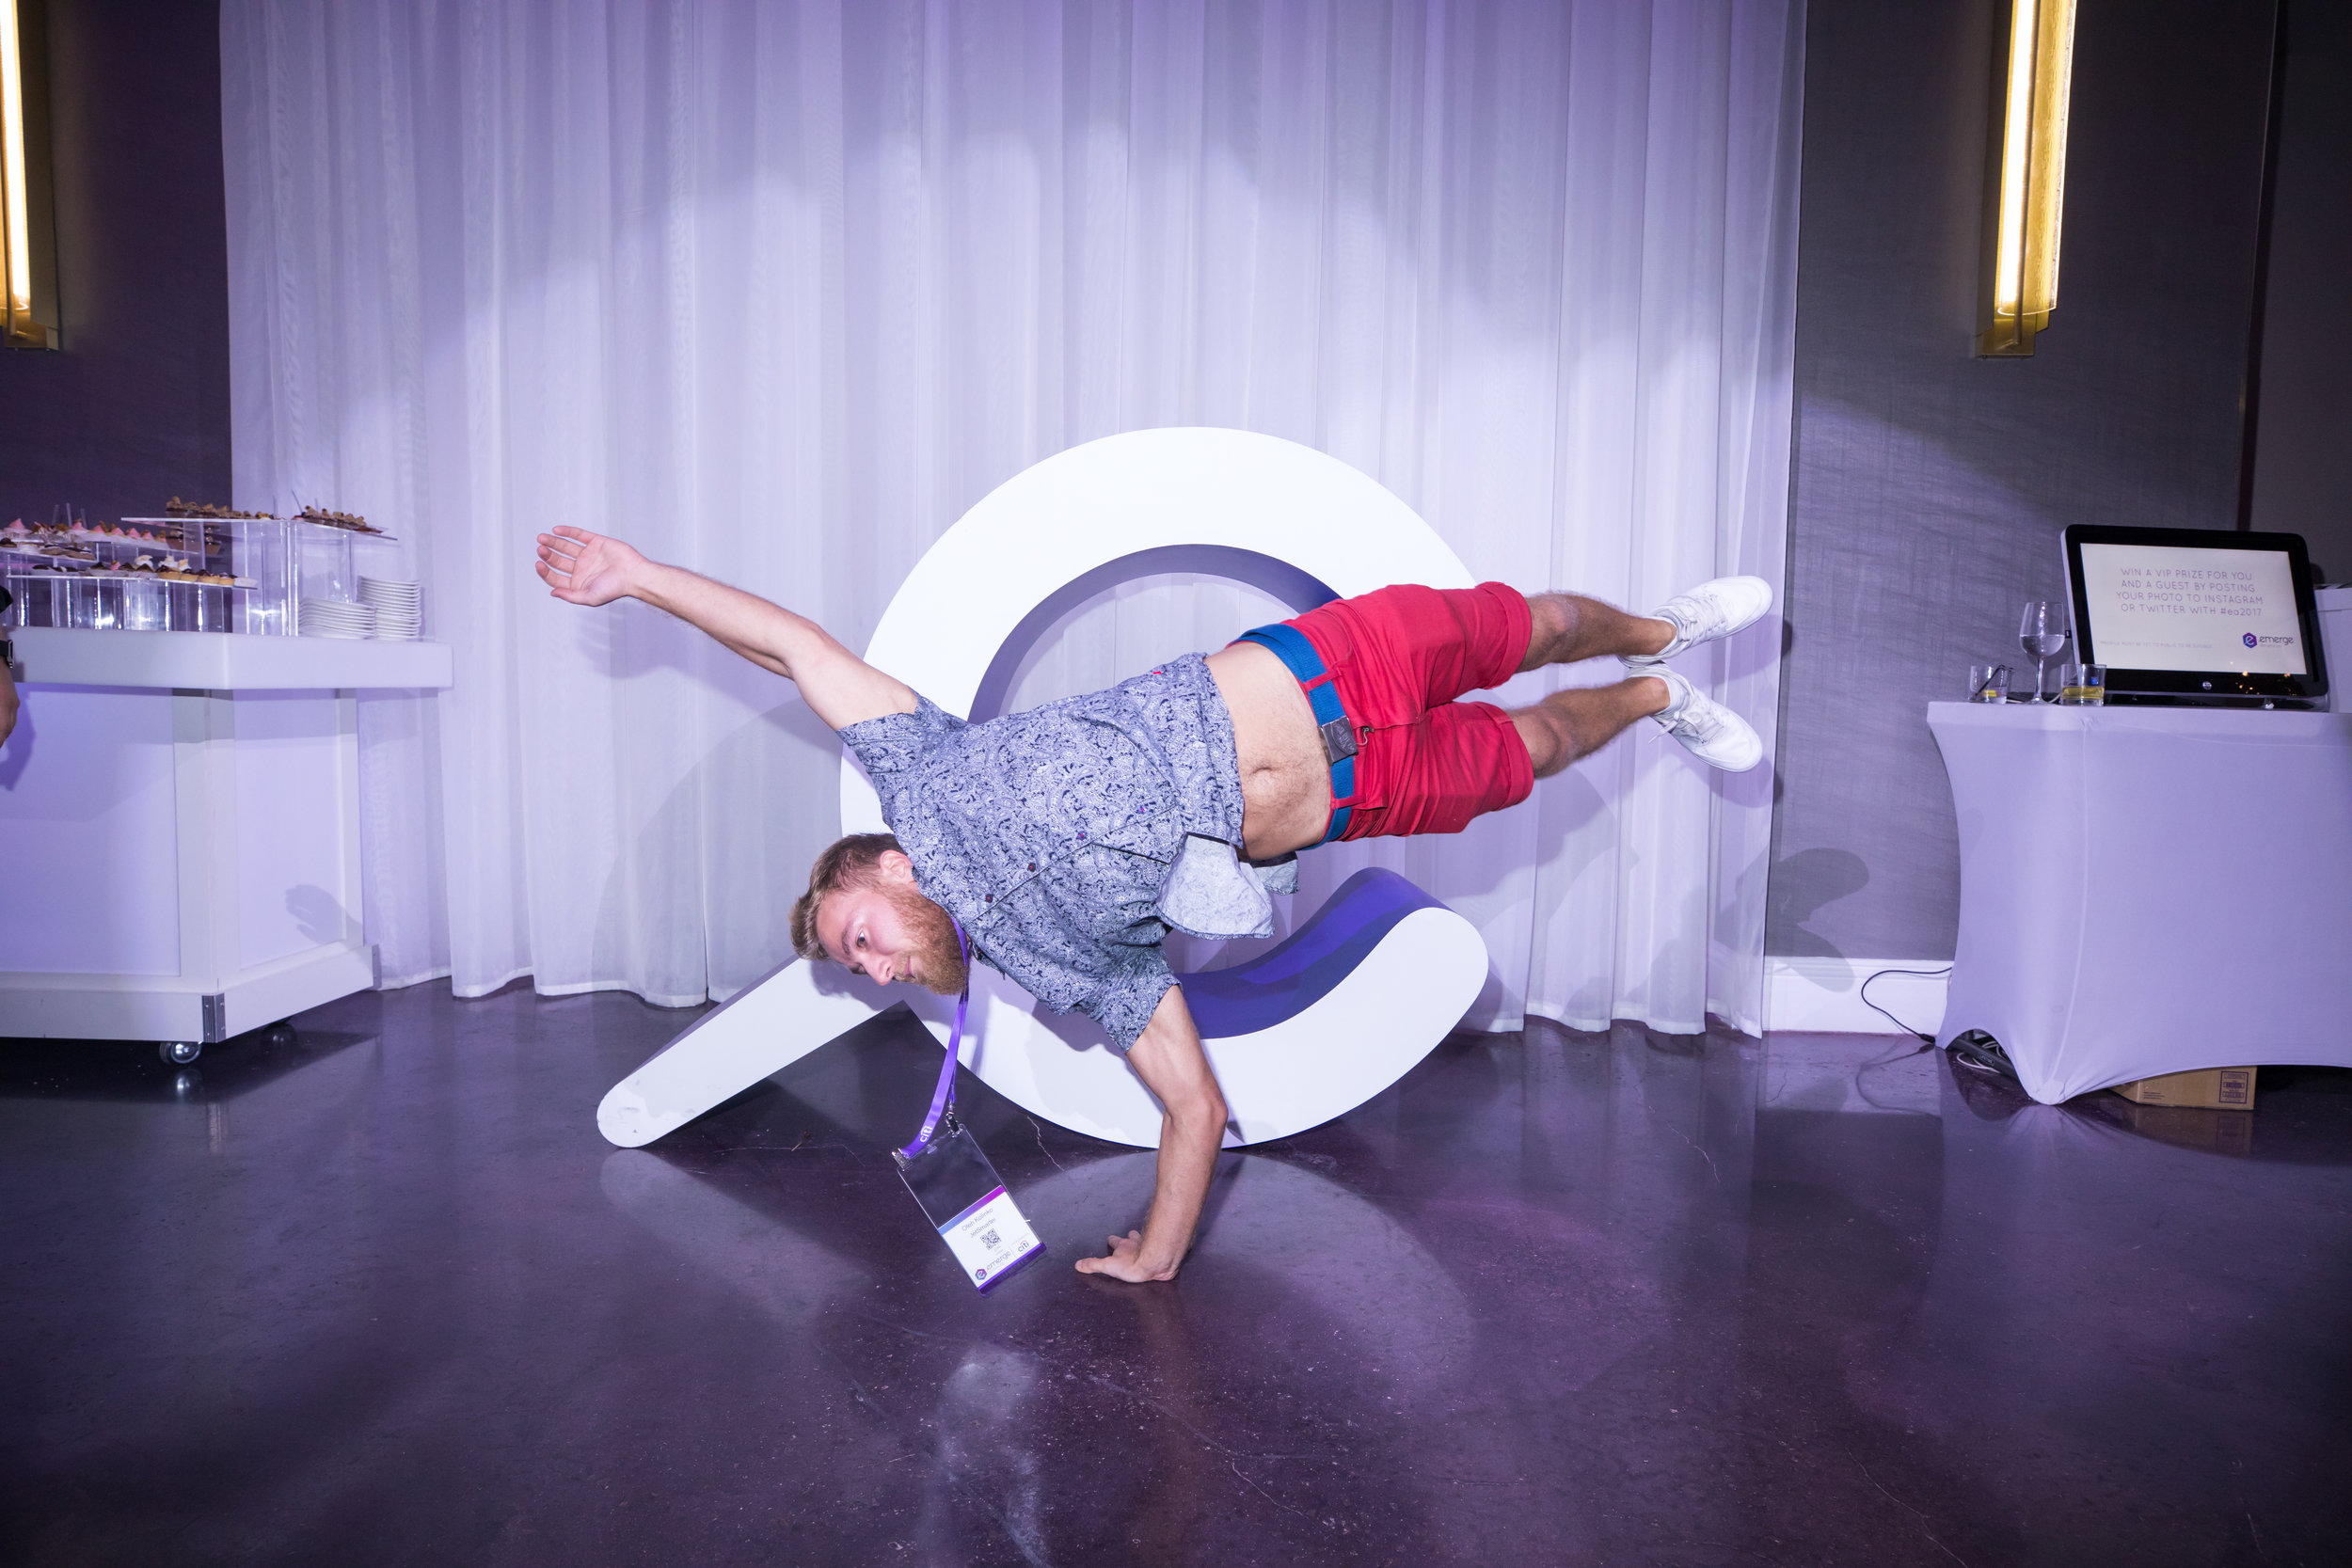 6-11-17 Emerge Opening Party-229.jpg